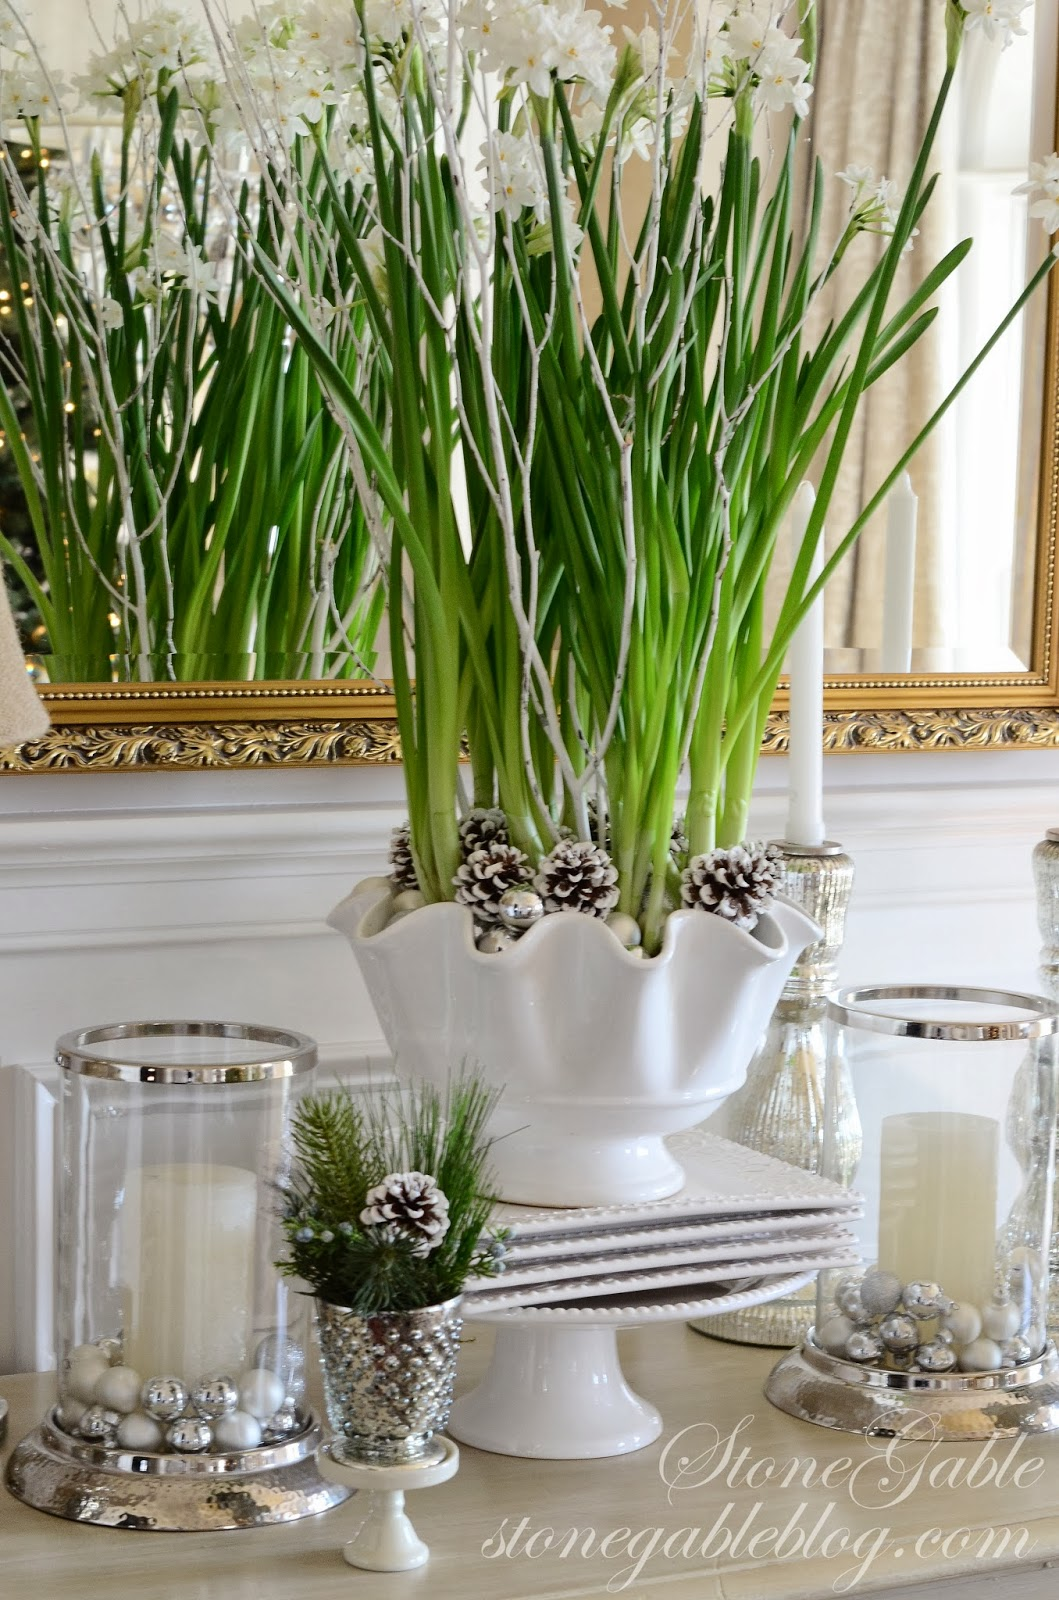 paper whites Narcissus ziva commonly known as papperwhites, these warm climate narcissus produce big clusters of starry white flowers with an intense fragrance popular for indoor forcing.